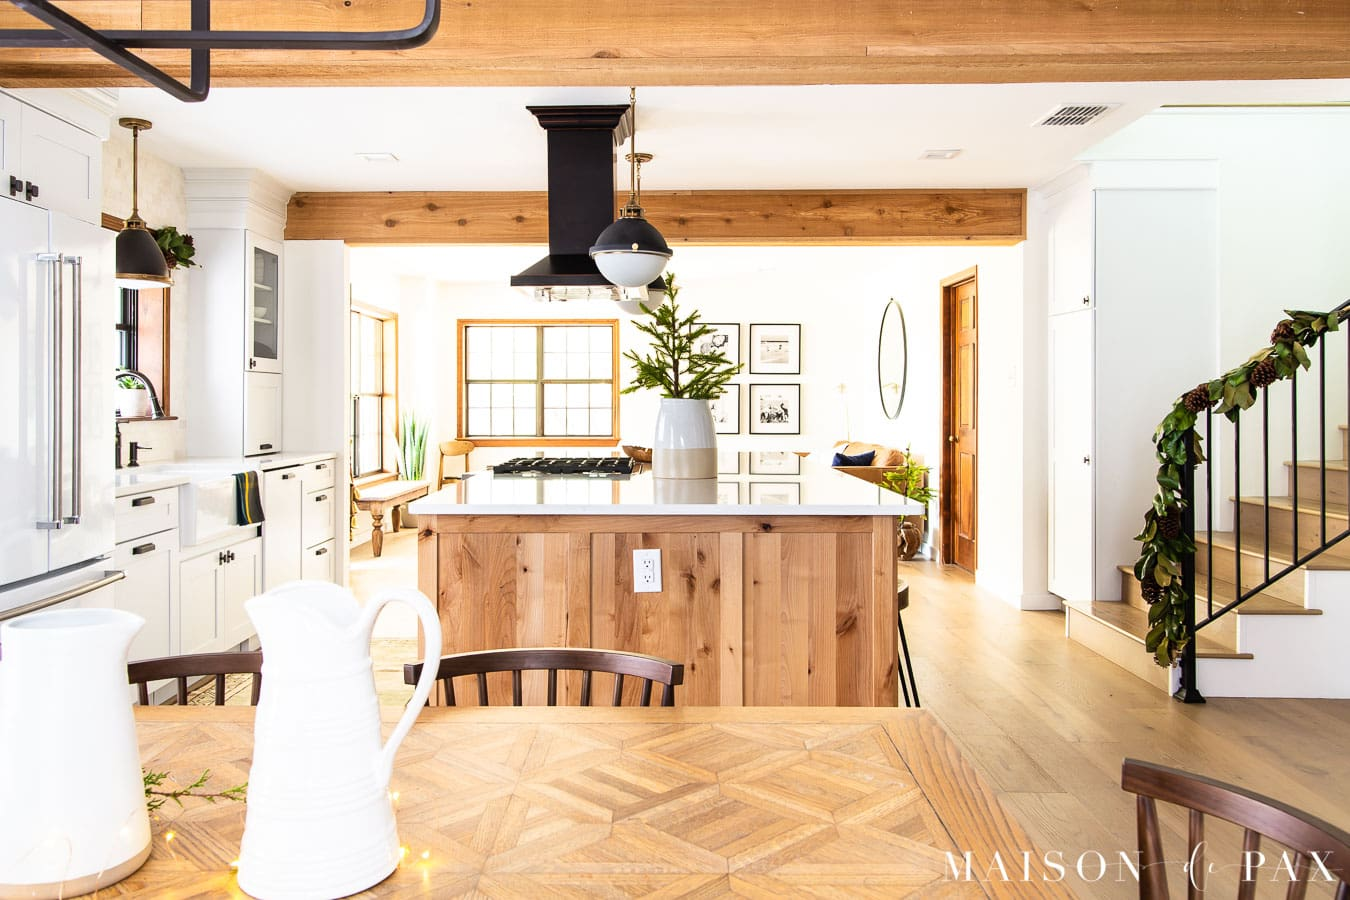 farmhouse kitchen decorated for Christmas | Maison de Pax